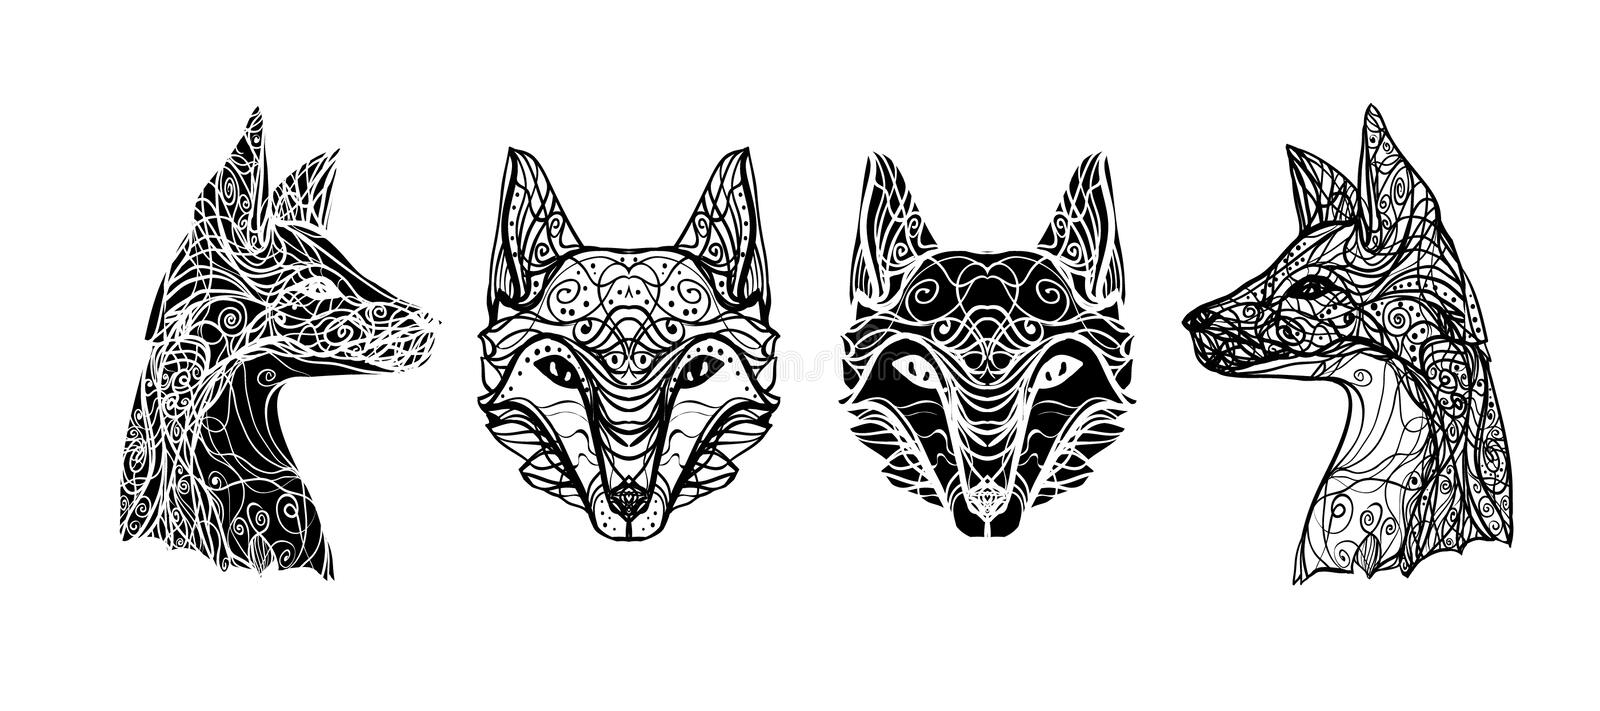 Abstract Image Of A Wolf For Tattoos And Printing On Paper Stock Vector Illustration Of Fabric Curly 112729523